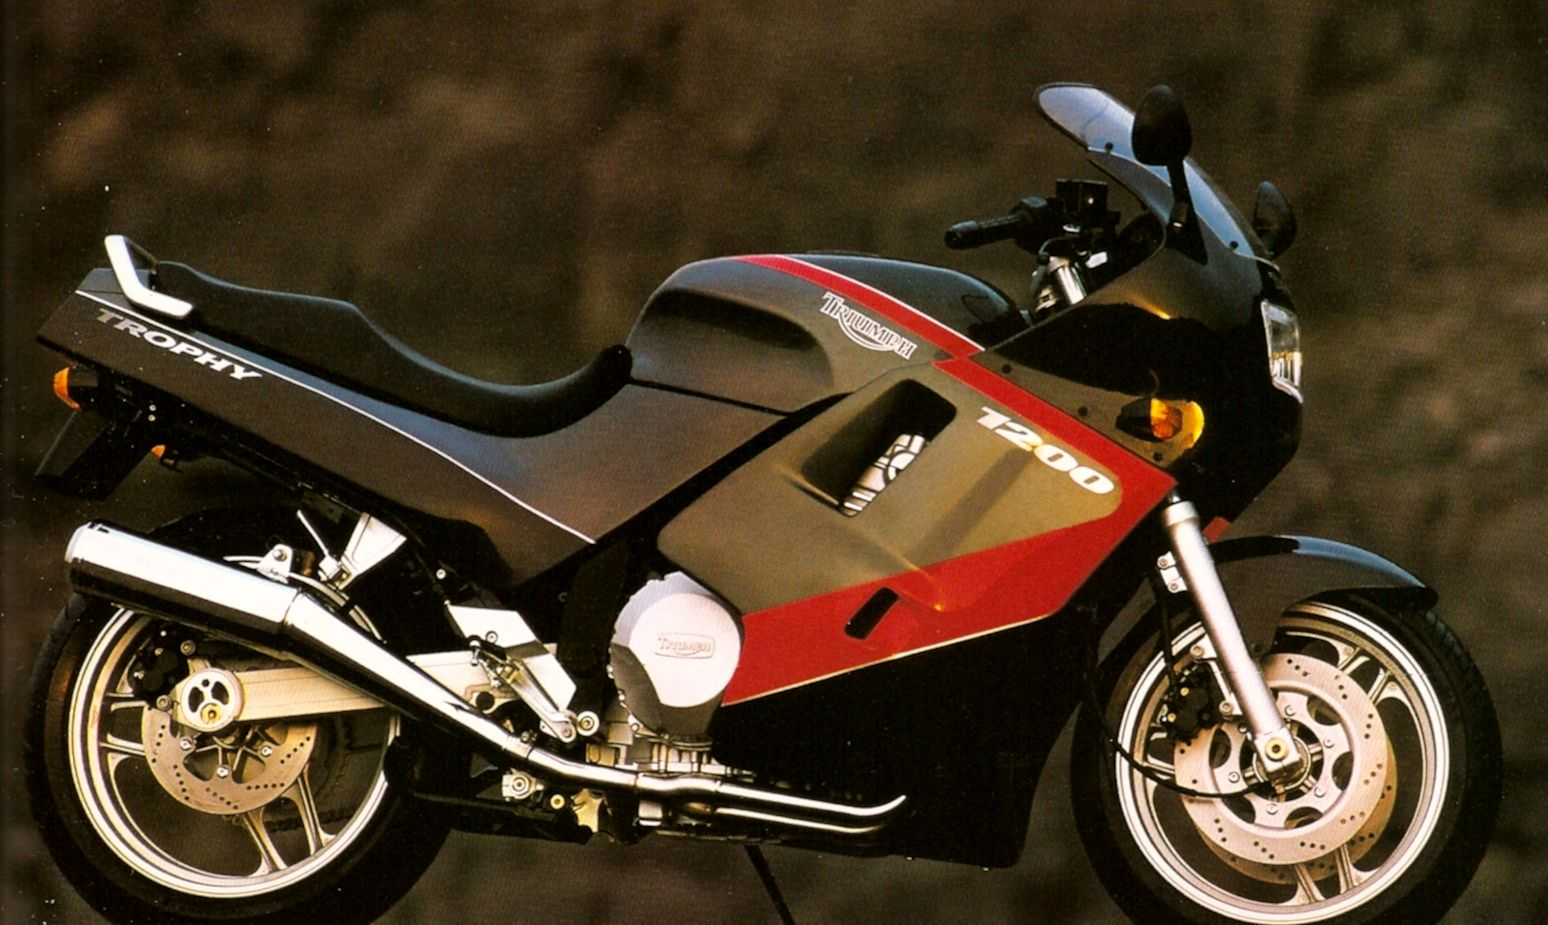 Triumph Daytona 1200 1994 wallpapers #130613